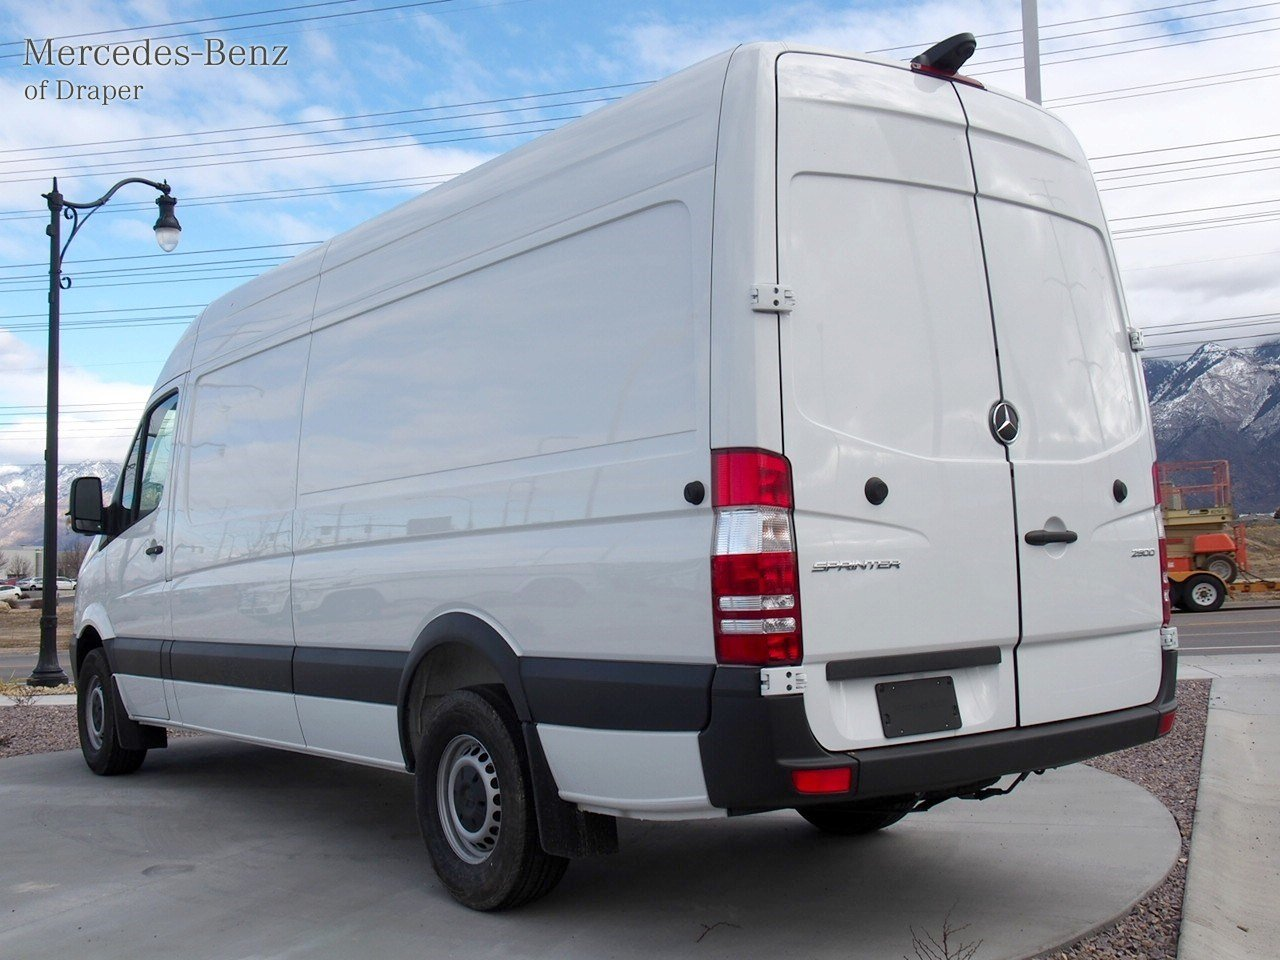 New 2017 mercedes benz sprinter cargo vans cargo van in for 2017 mercedes benz sprinter cargo van